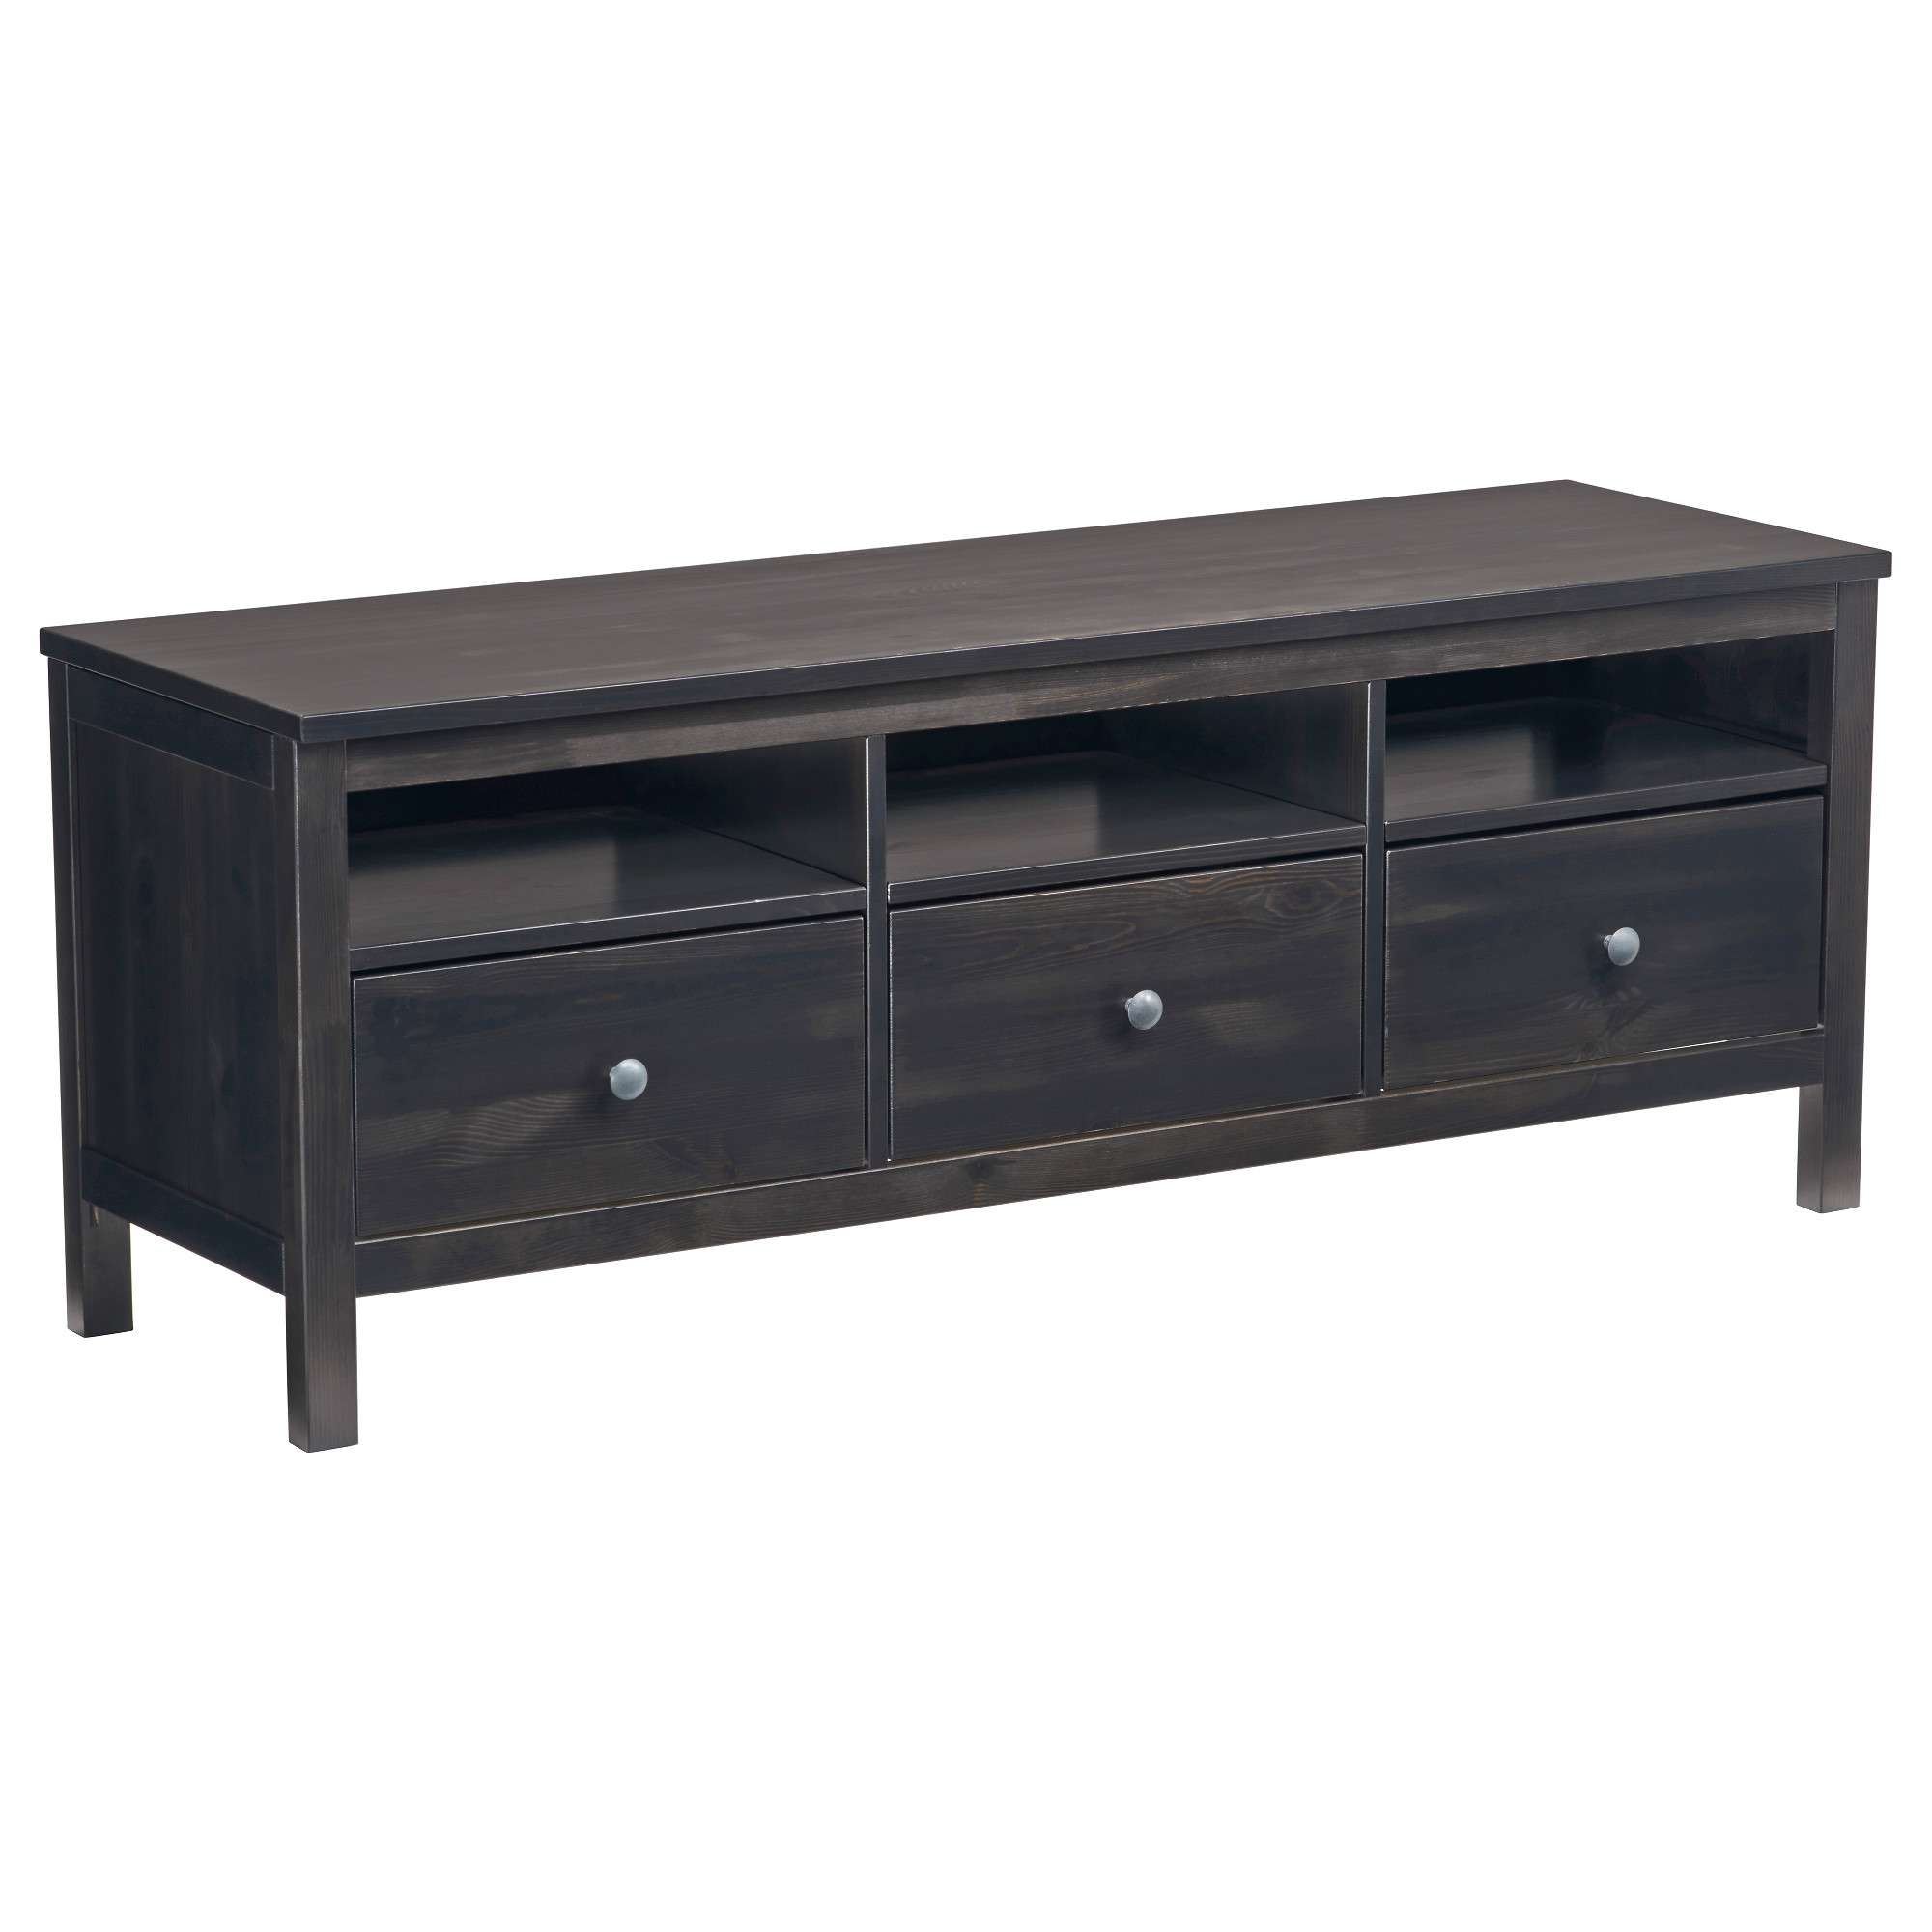 Tv Stands & Entertainment Centers – Ikea Regarding Black Tv Cabinets With Drawers (View 13 of 20)